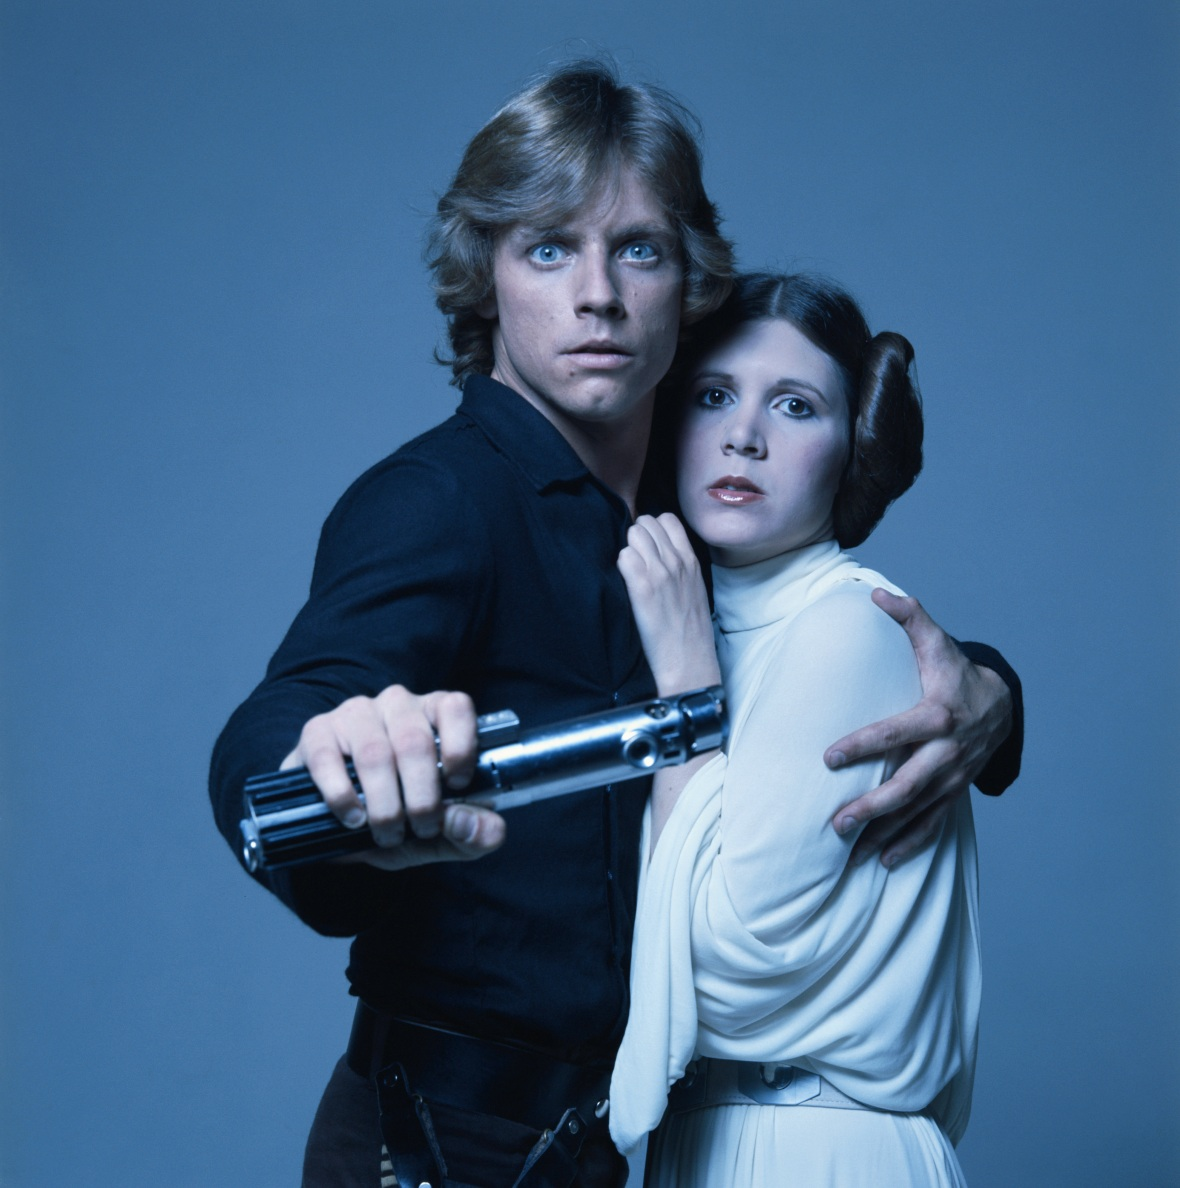 carrie fisher mark hamill getty images